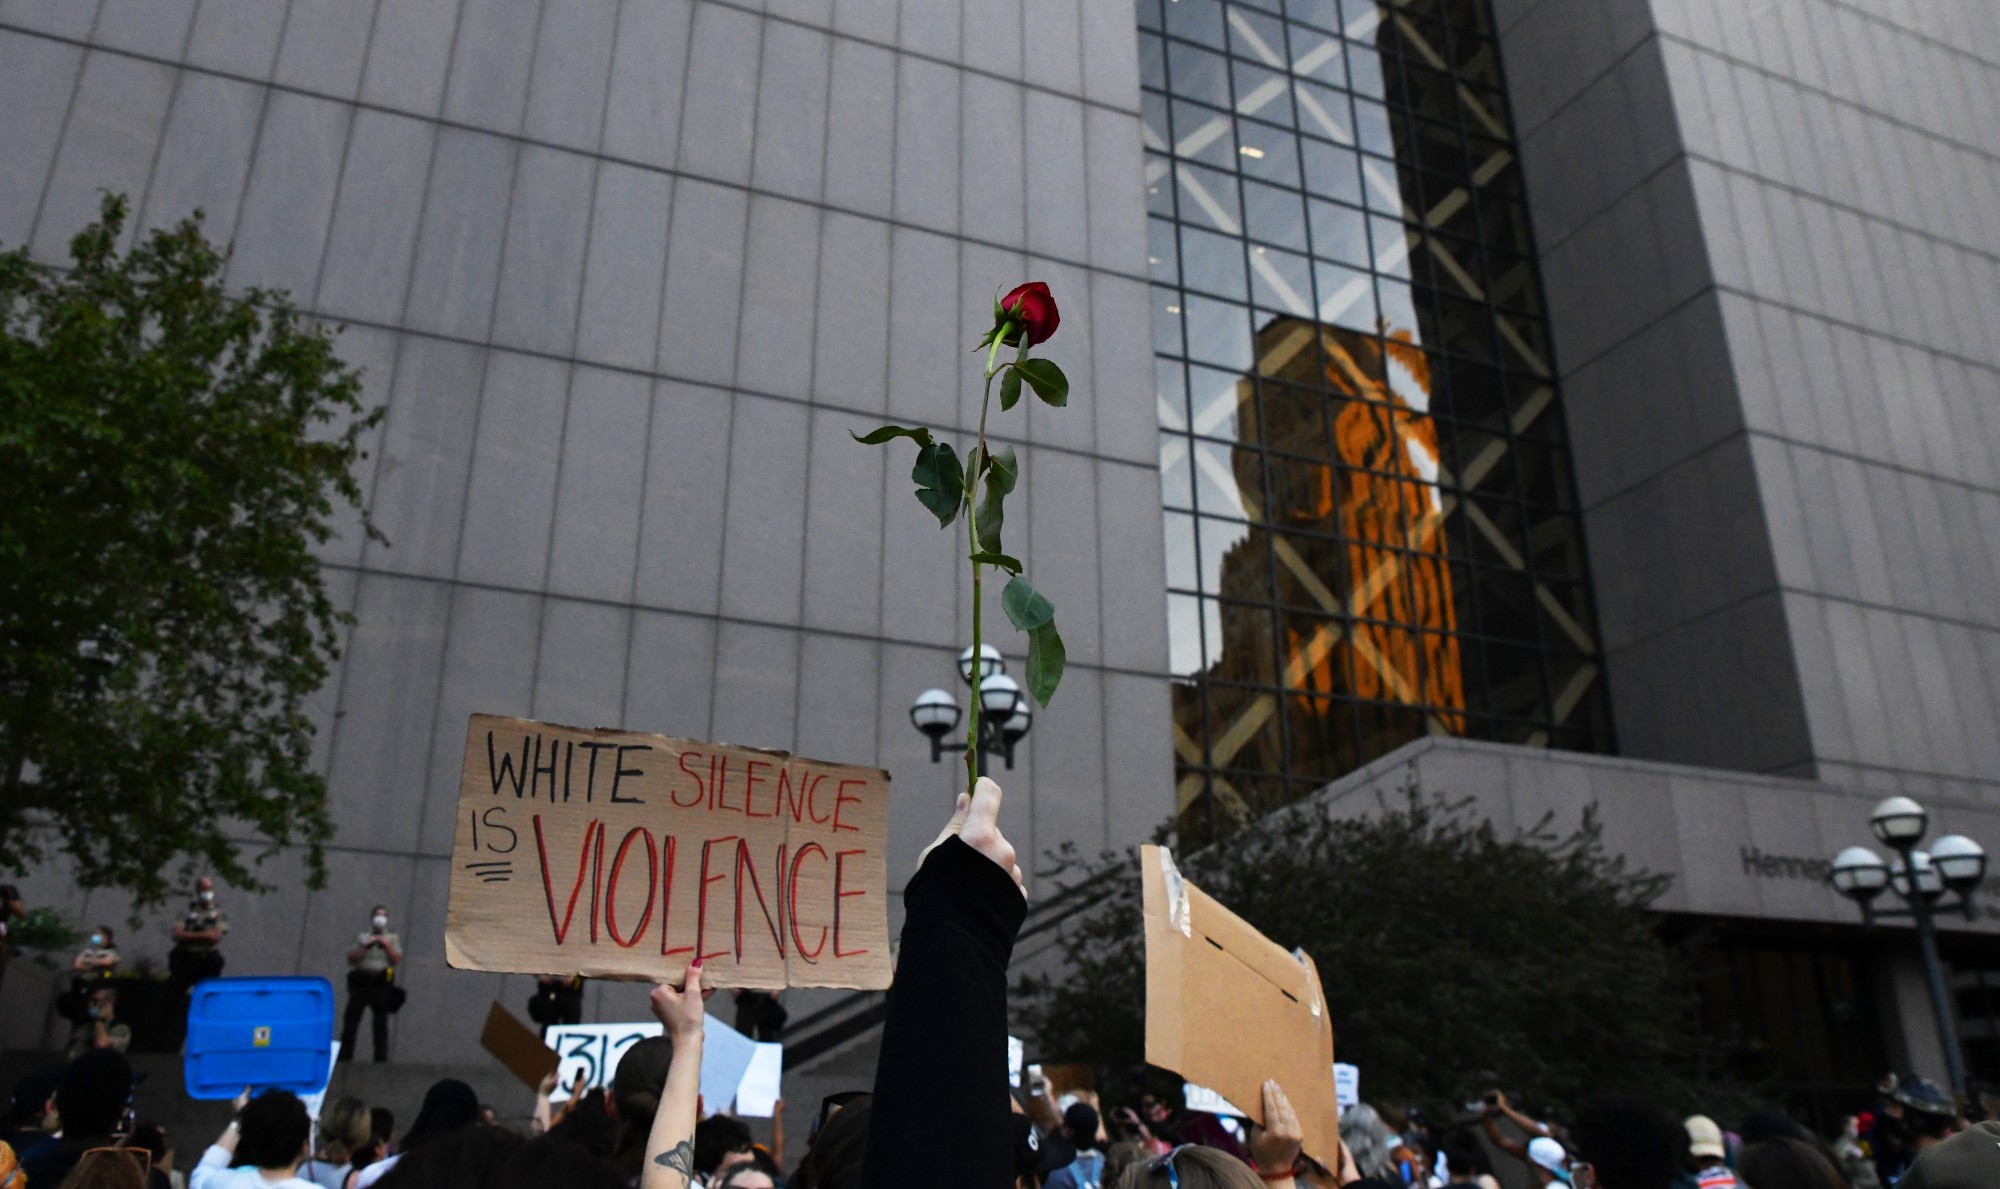 A demonstrator holds up a rose at a protest at Government Plaza in Minneapolis on Thursday, May 28.